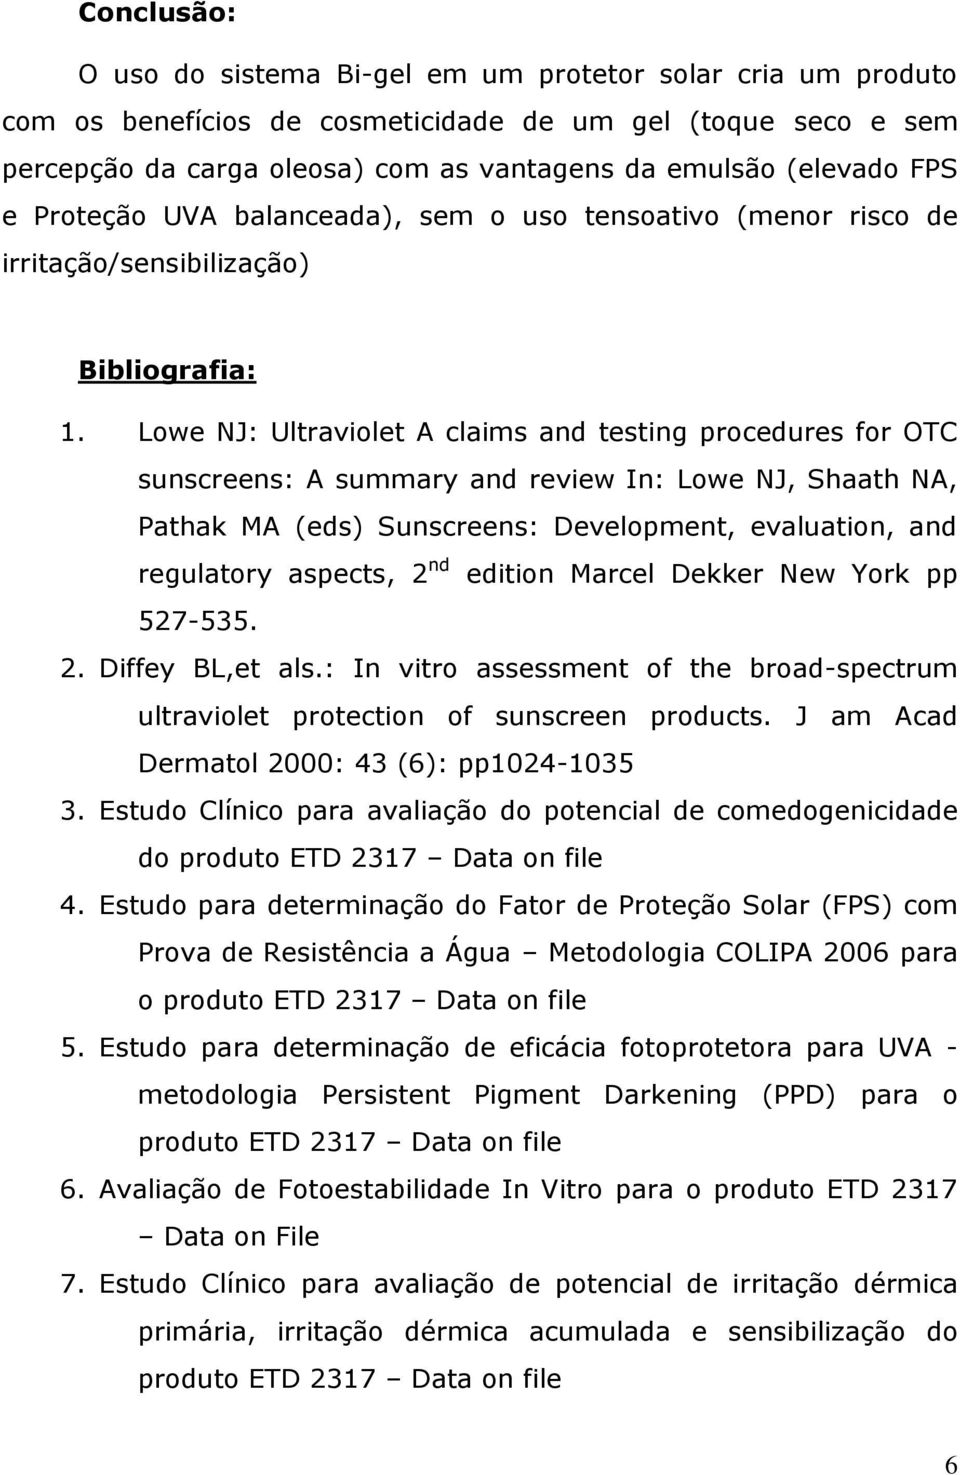 Lowe NJ: Ultraviolet A claims and testing procedures for OTC sunscreens: A summary and review In: Lowe NJ, Shaath NA, Pathak MA (eds) Sunscreens: Development, evaluation, and regulatory aspects, 2 nd